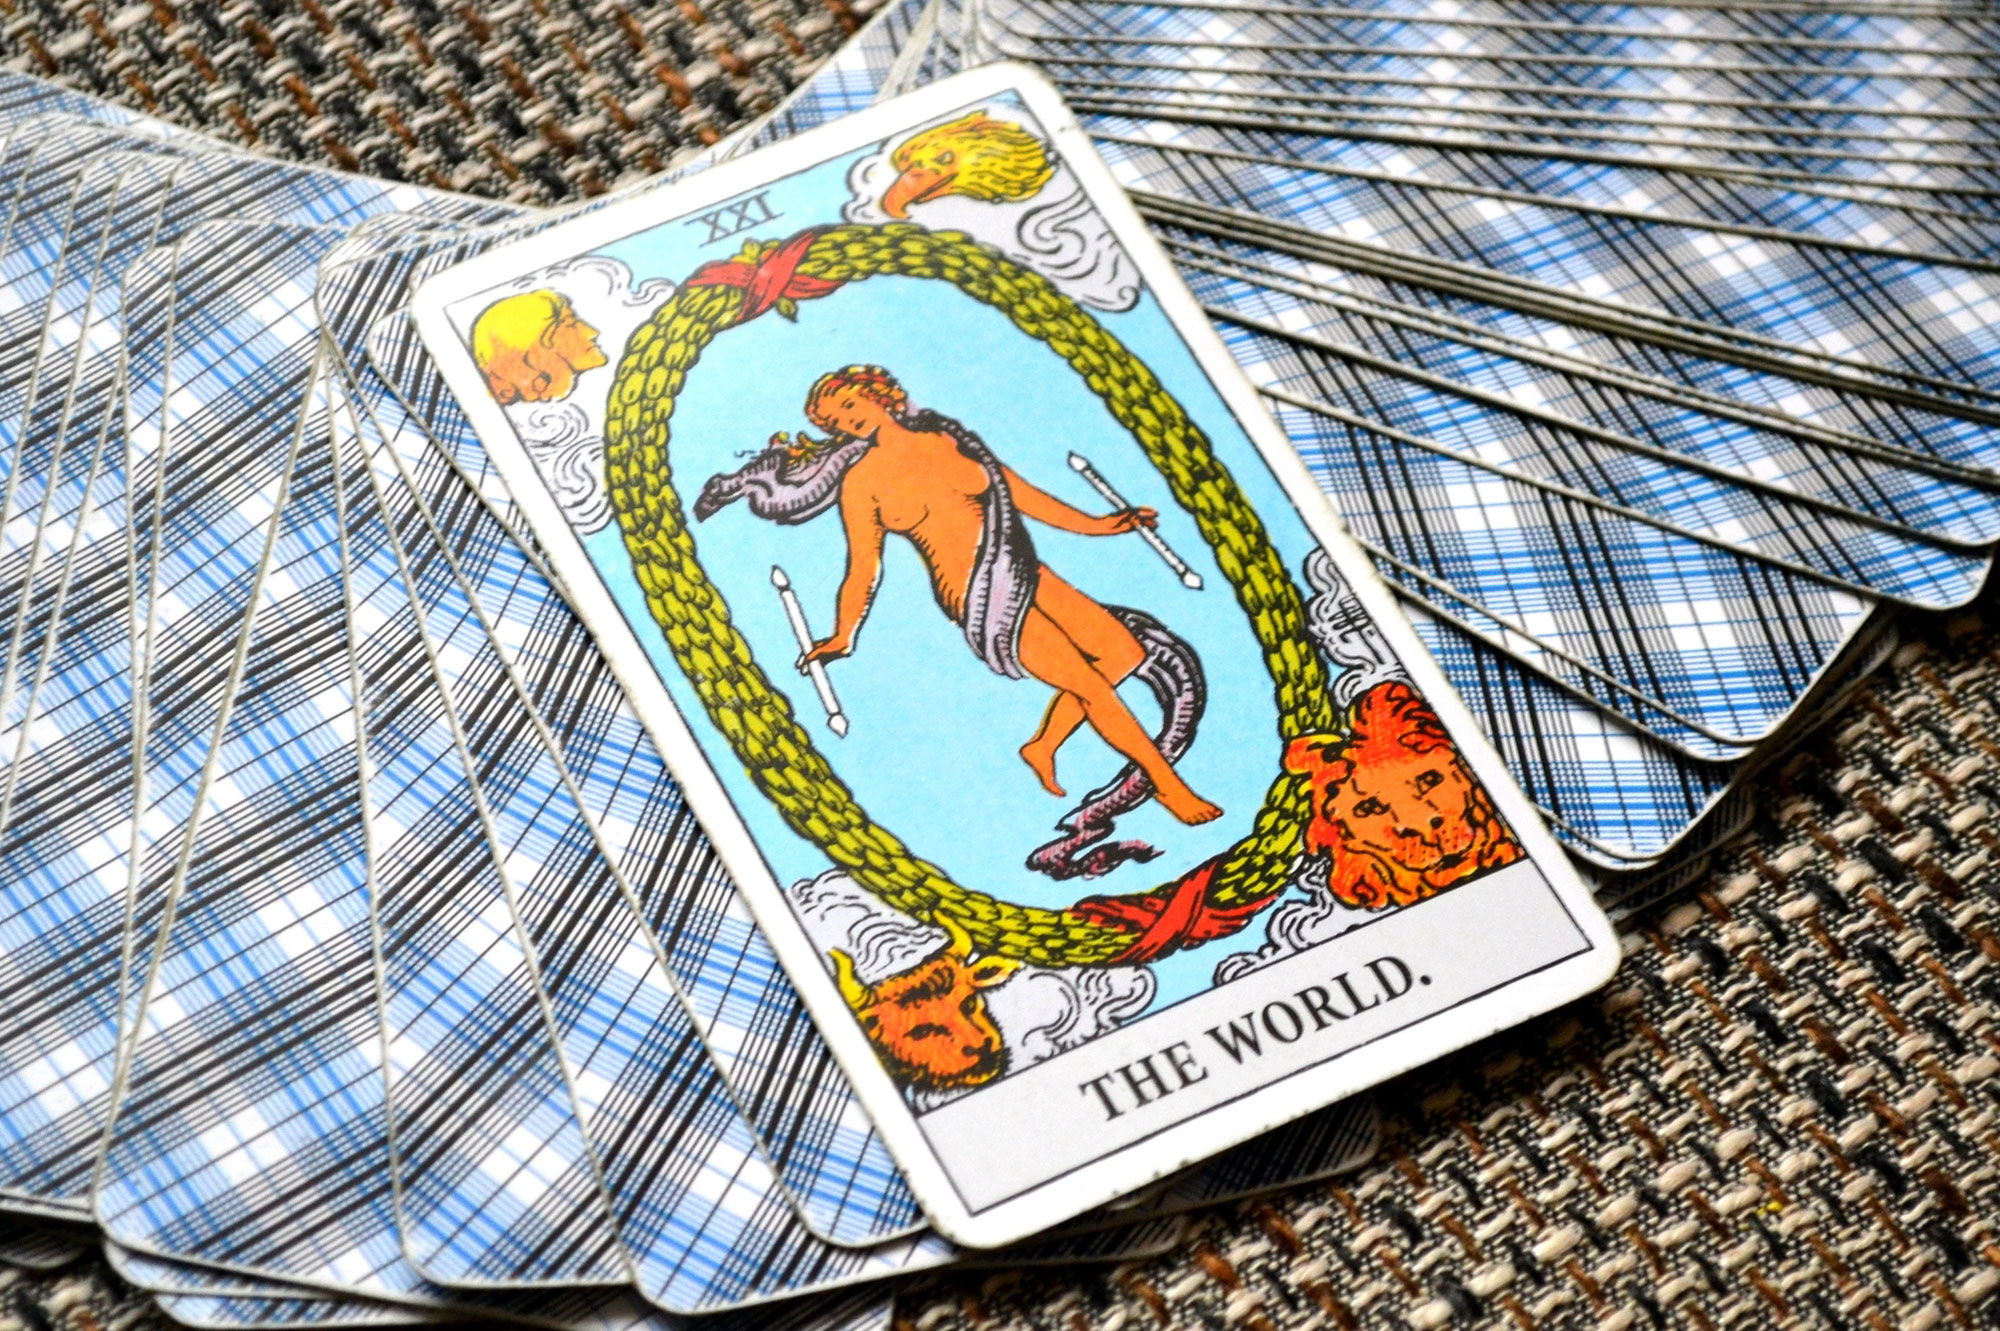 What Does The World Card Mean in Tarot? | LoveToKnow